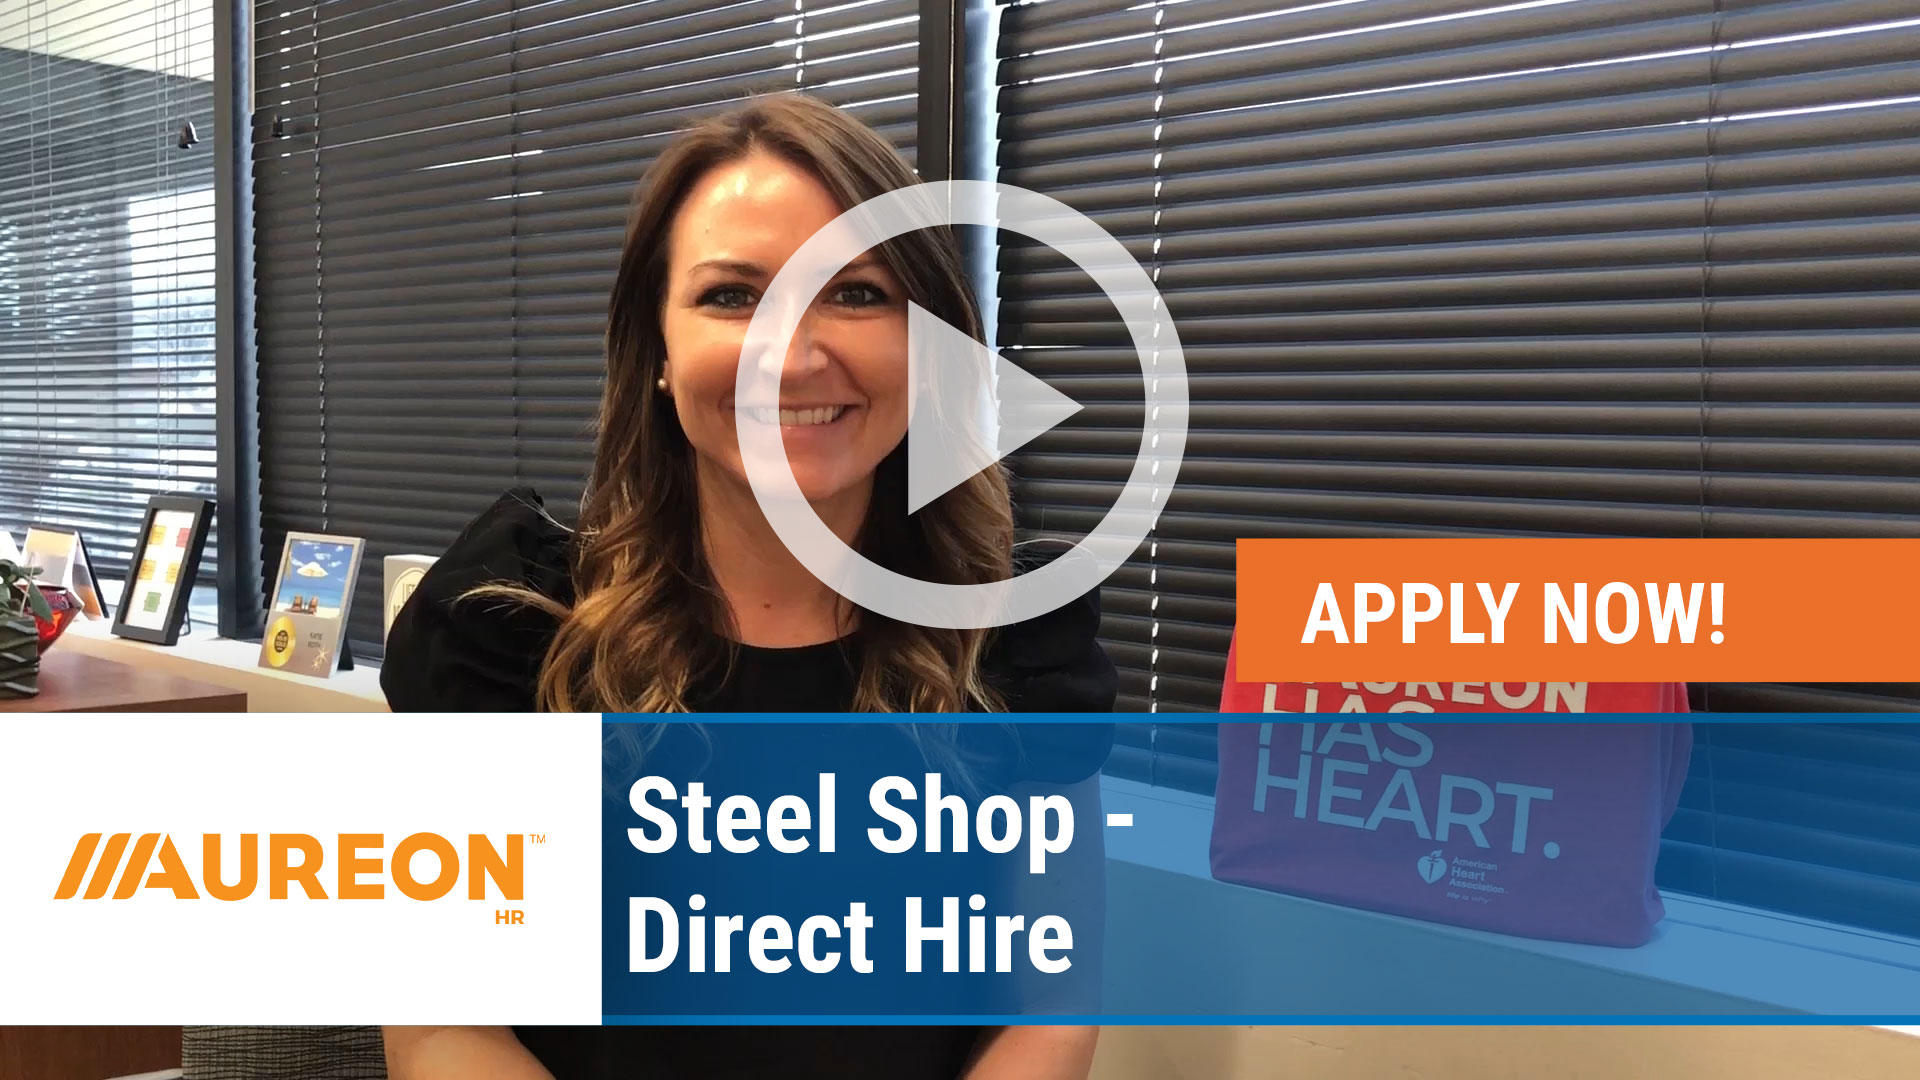 Watch our careers video for available job opening Steel Shop - Direct Hire in Des Moines,  IA